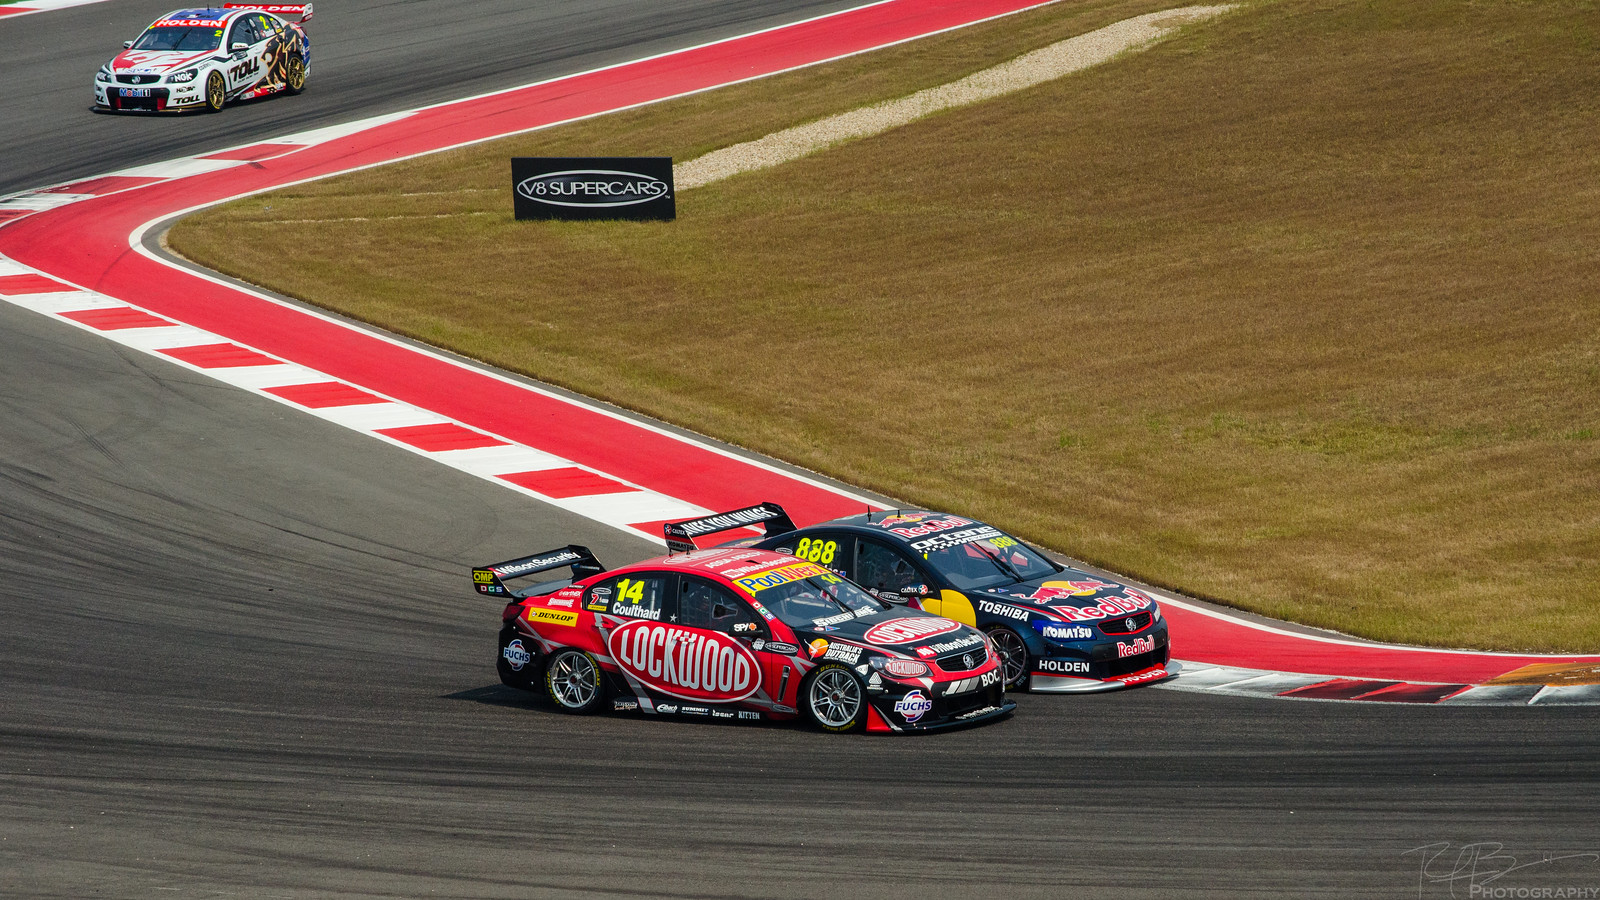 Lowndes making an inside move on Coulthard